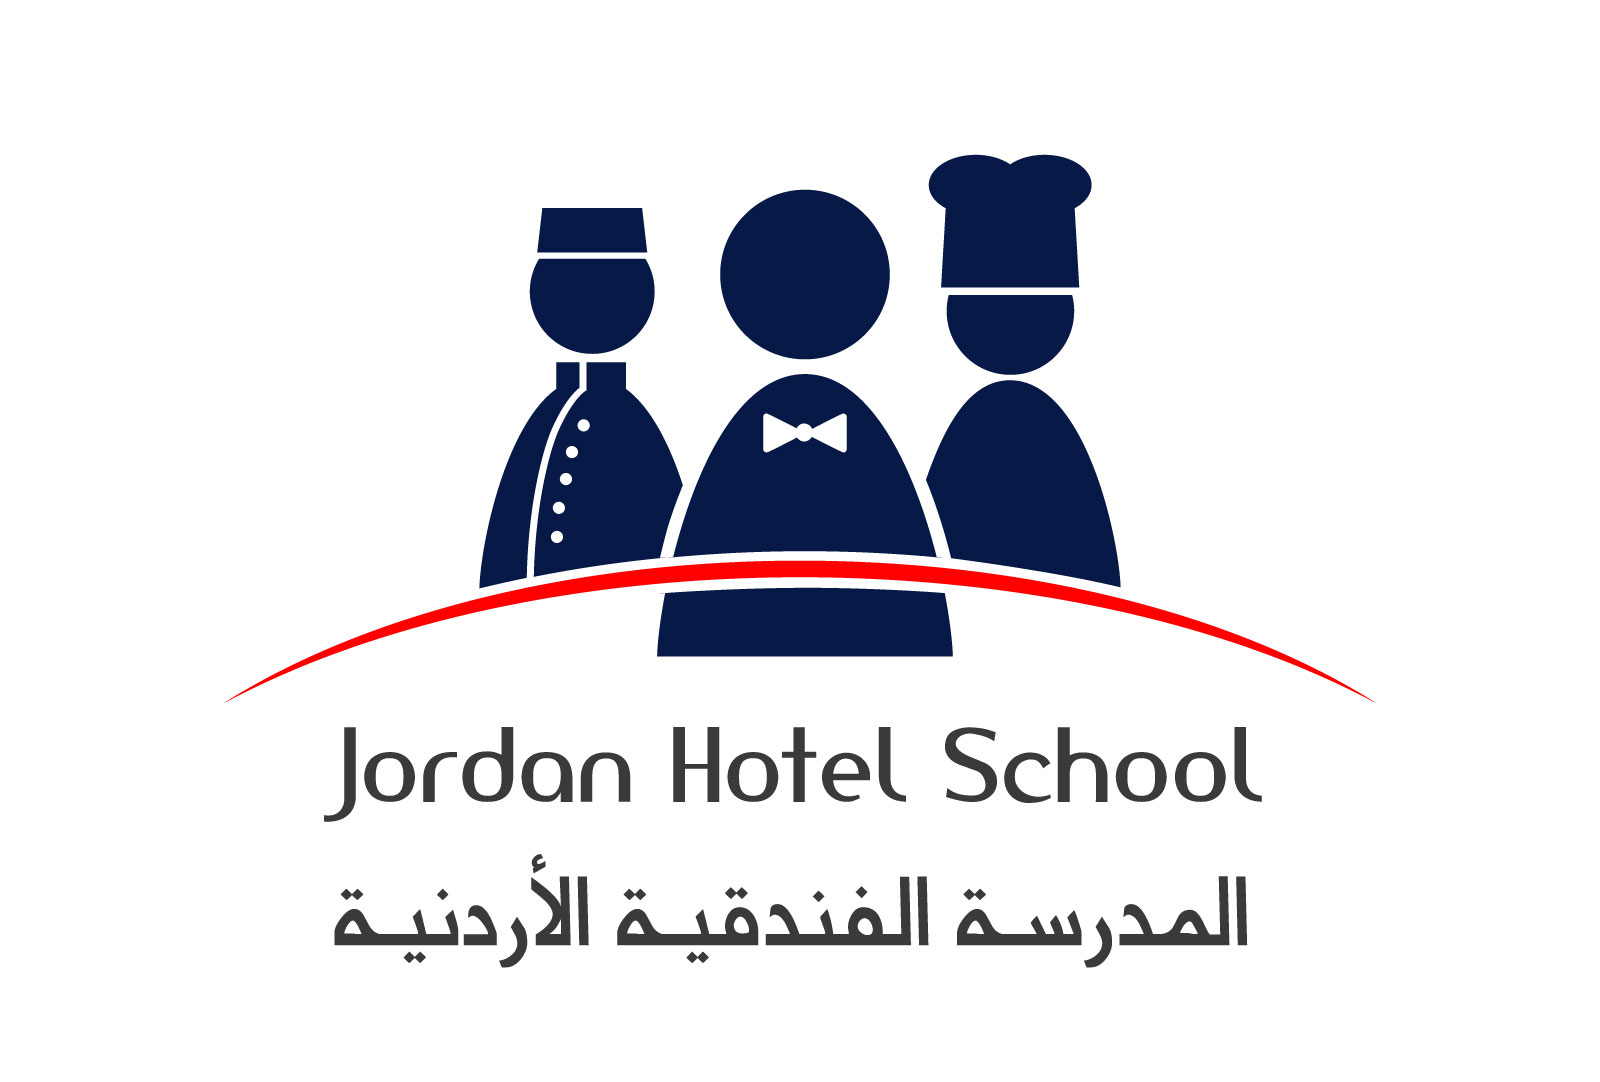 Jordan Hotel School Logo design by Creations.